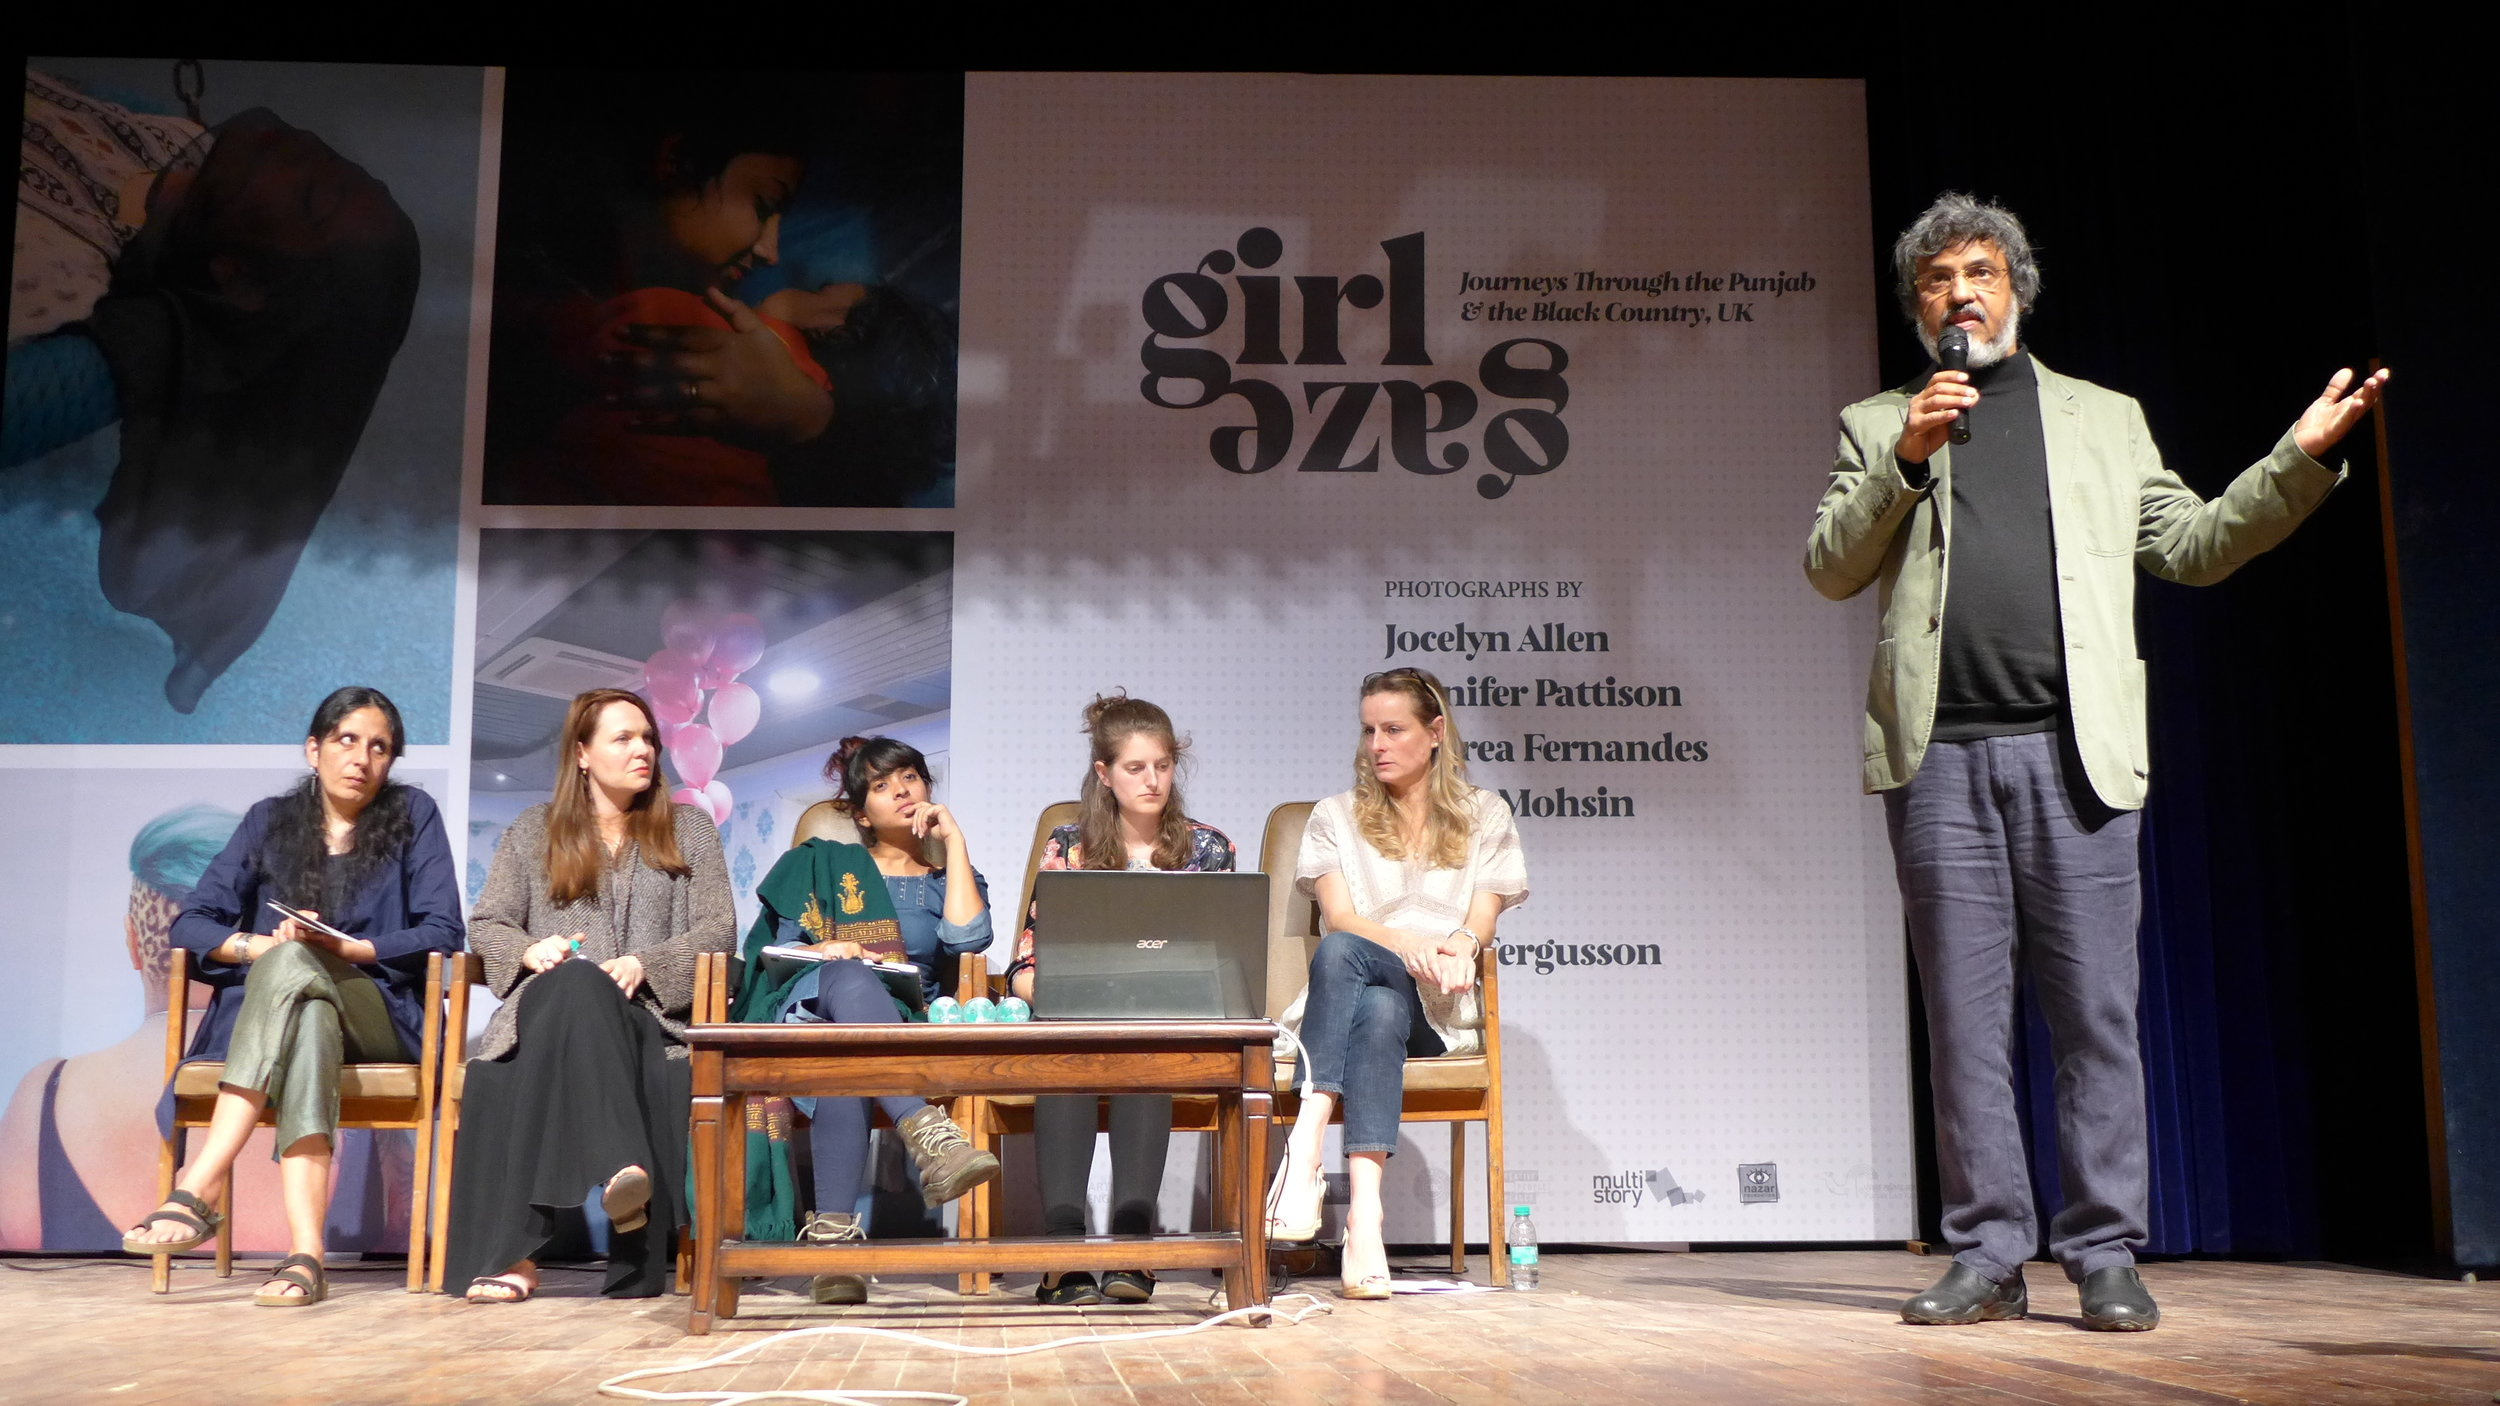 Girl Gaze artists Uzma, Jennifer, Andrea and Jocelyn with curator Iona Fergusson being introduced onstage in Chandigarh.